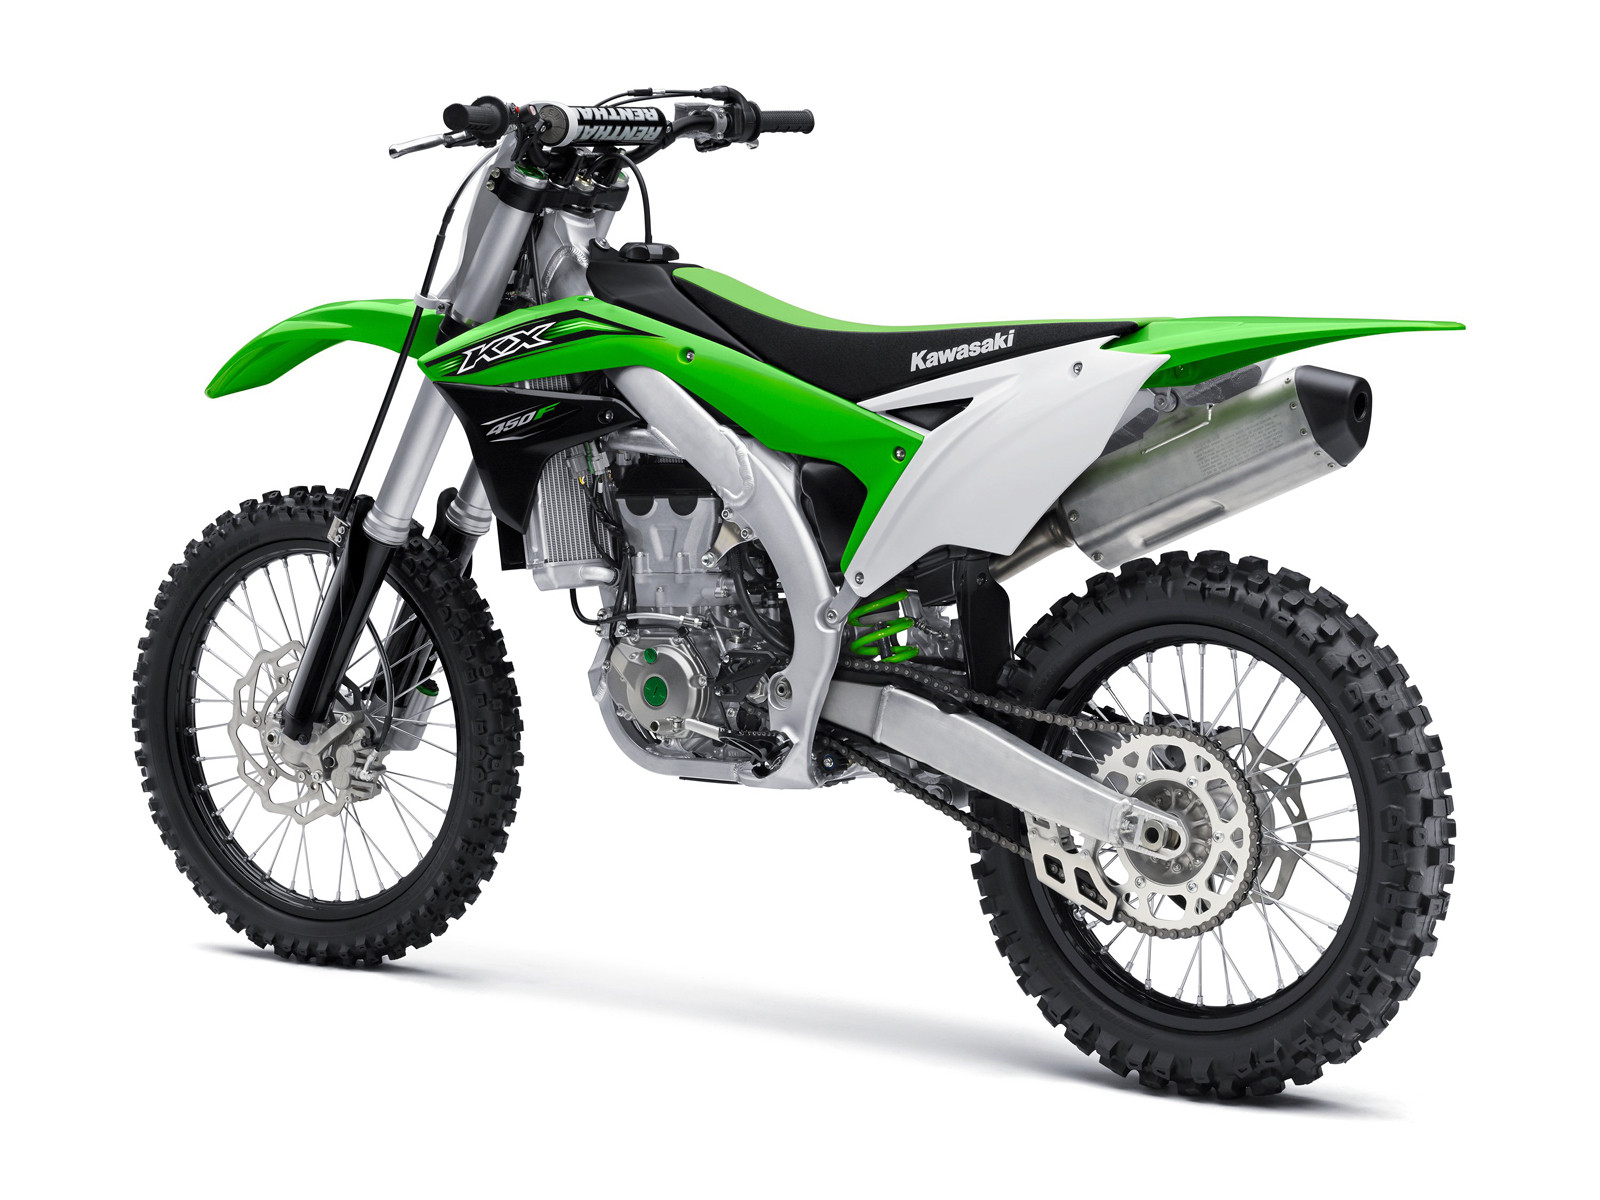 2016 Kawasaki KX450F - First Look: 2016 Kawasaki KX Models - Motocross Pictures - Vital MX